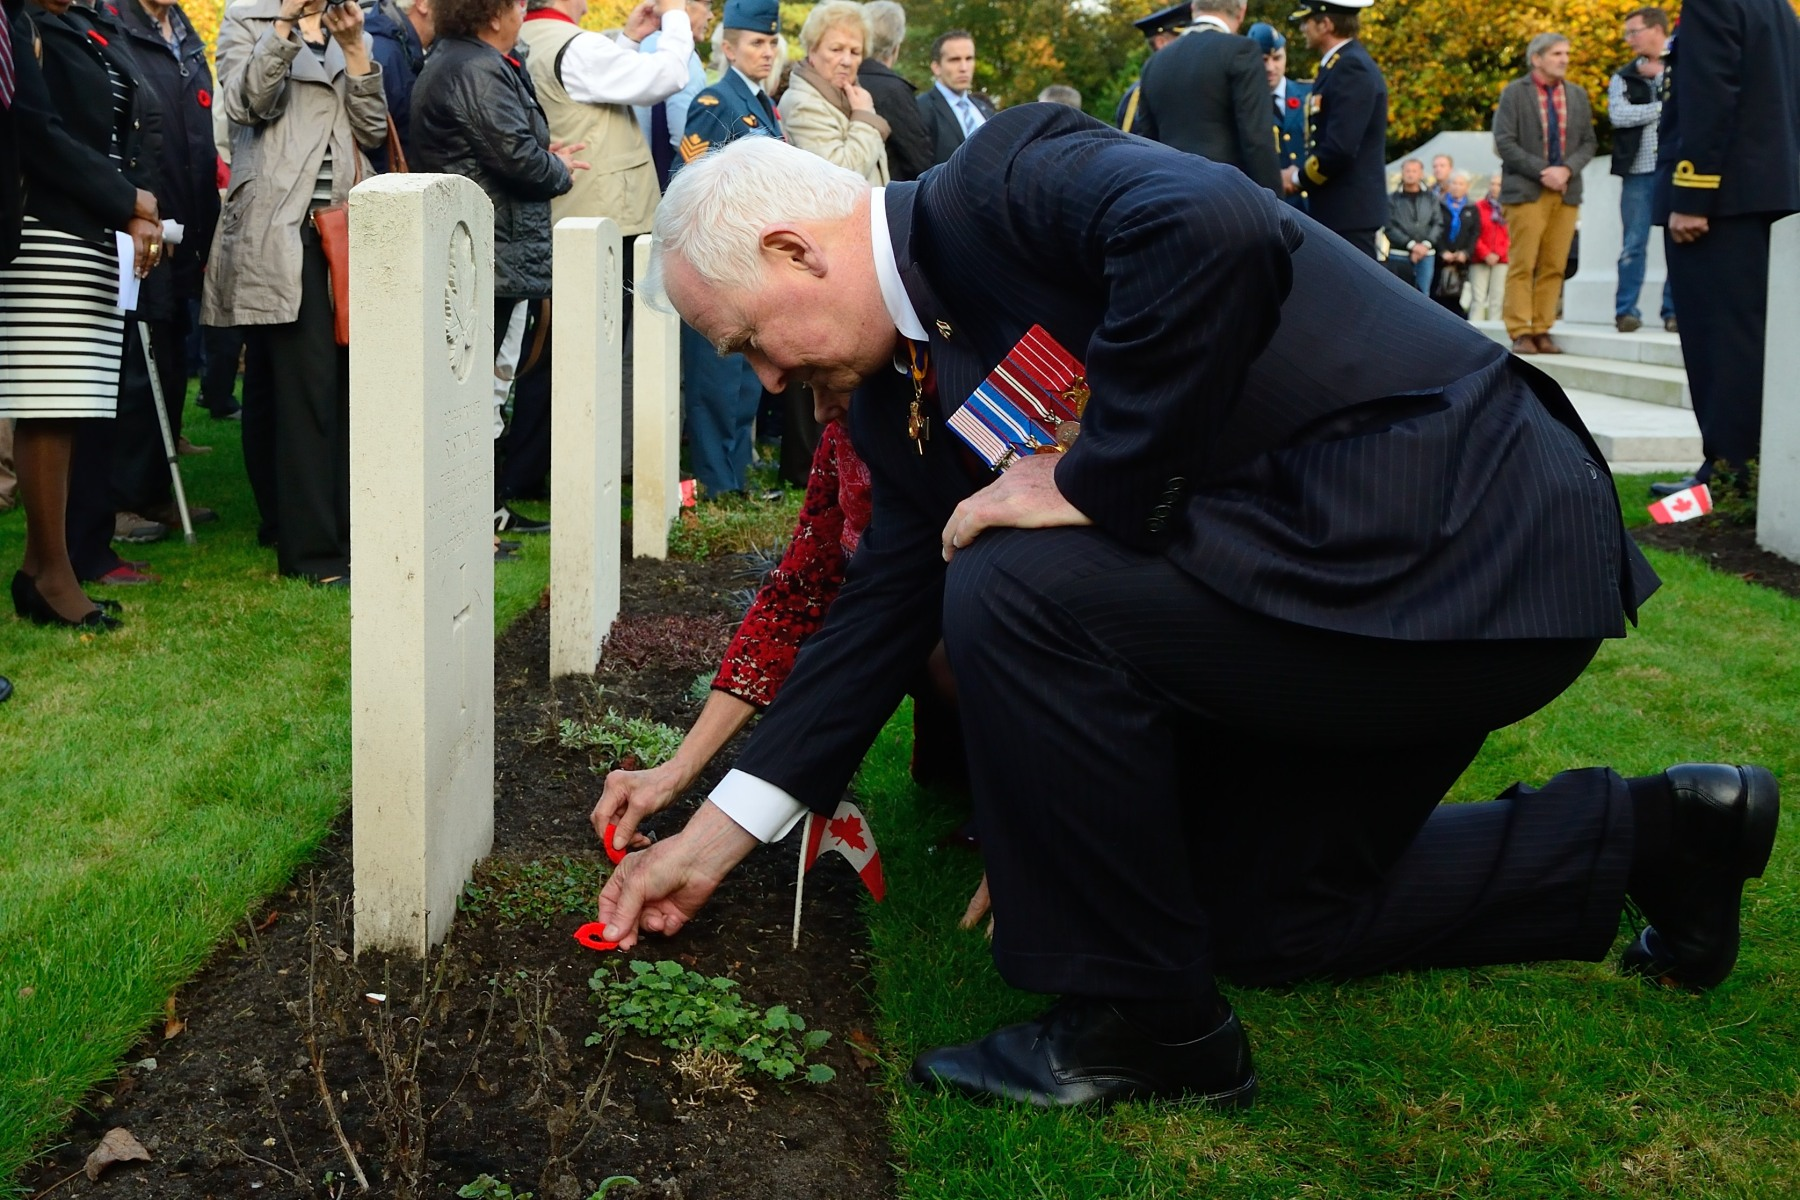 Their Excellencies and Canadian delegates commemorated the valour of Canadian soldiers in the Battle of the Scheldt to mark the 70th anniversary of the beginning of the Liberation of the Netherlands, and to inaugurate a Canadian Day of Memory in the Netherlands.